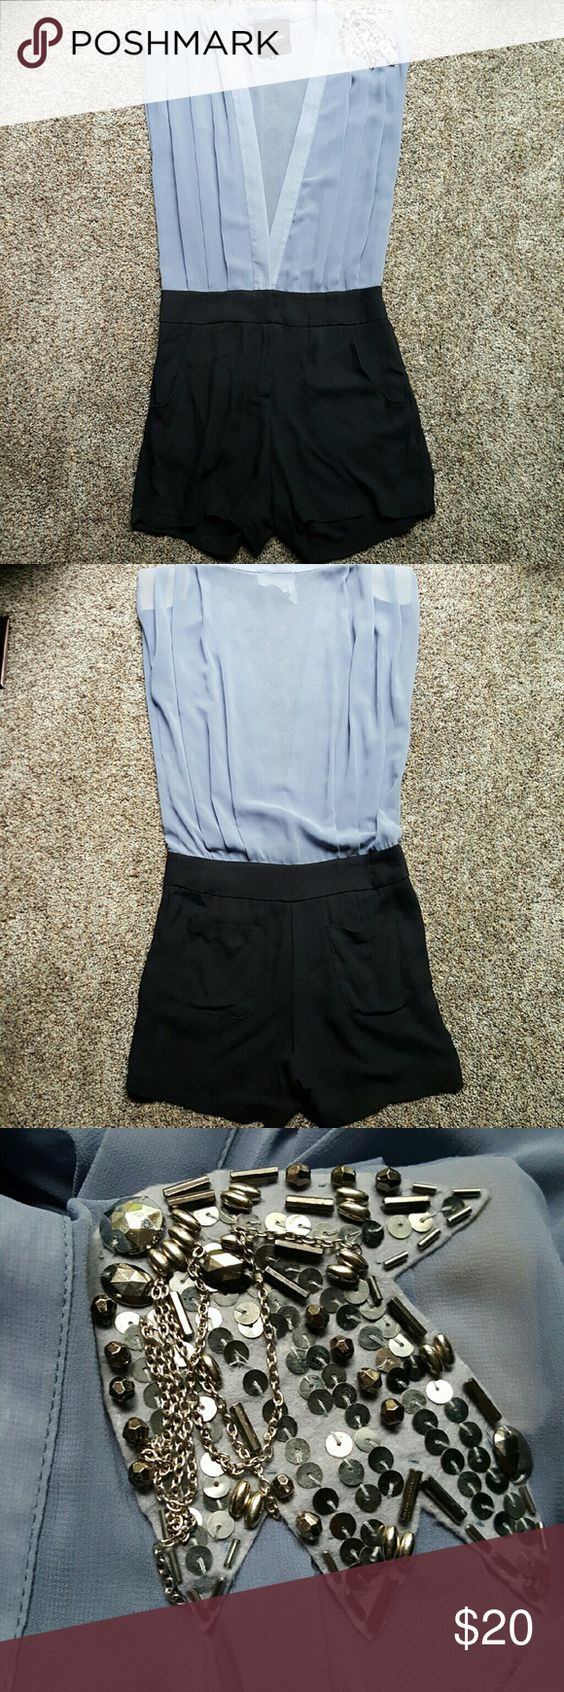 """Dressy Deep V Romper Purchased at a local boutique and worn once by my 5'7"""" cousin. It doesn't work for my shorter torso. The brand is Pepper; Size Medium. The top is a periwinkle blue, sheer material with an open deep V neck (plunges to the waist band of the shorts), small shoulder pads and embellishment on the shoulder and the bottoms are black and somewhat loose with front and back pockets. 100% Polyester and 100% Rayon contrast. 15.5"""" across (waist); 10"""" rise to zipper; 12.5"""" rise to…"""